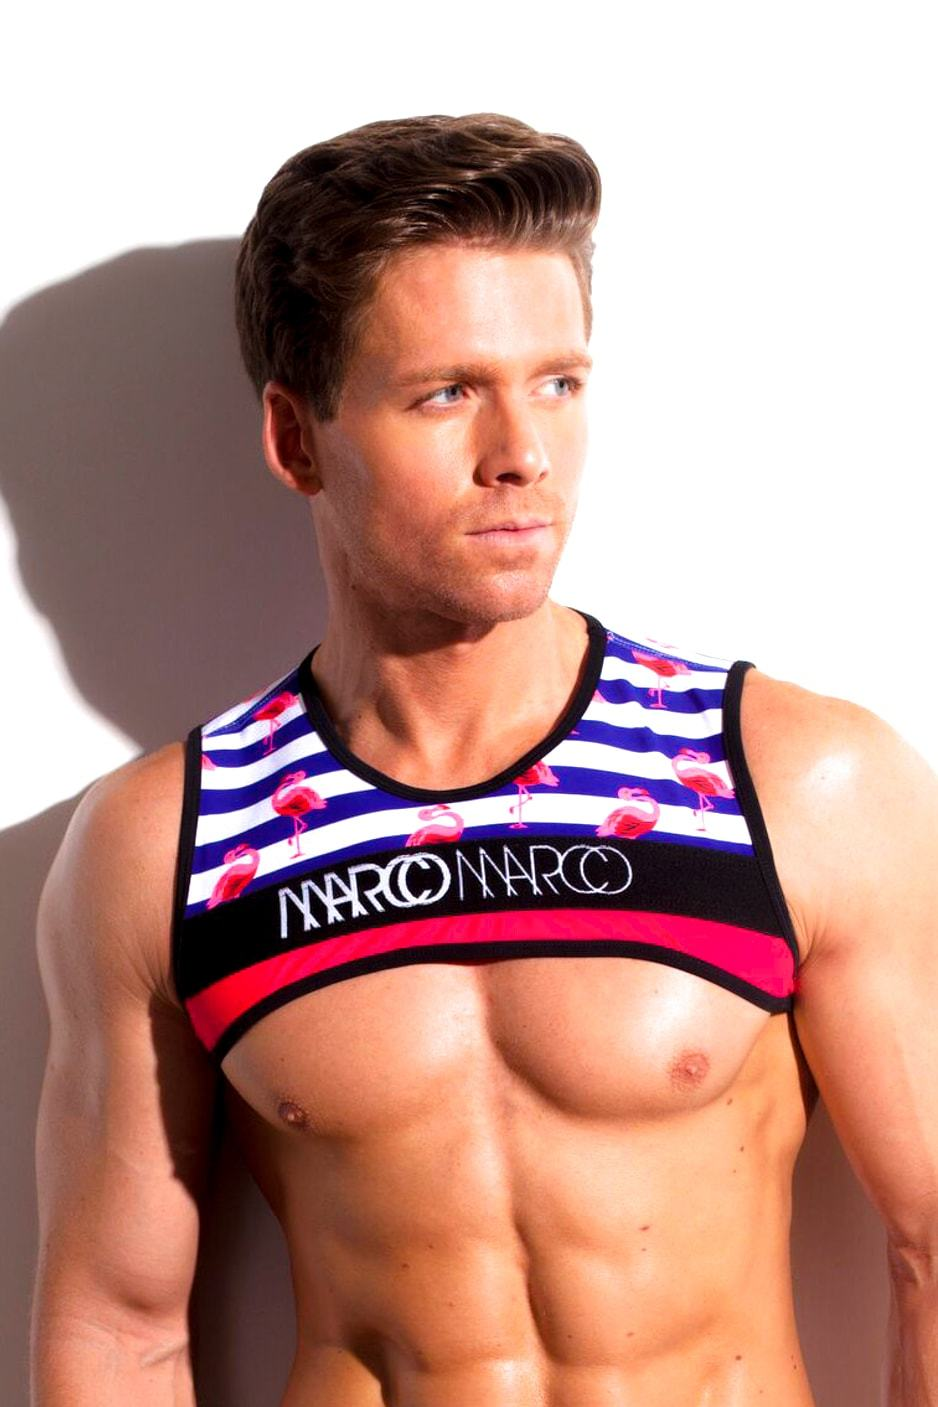 Designer Mens Underwear | Marco Marco | Nautical Harness